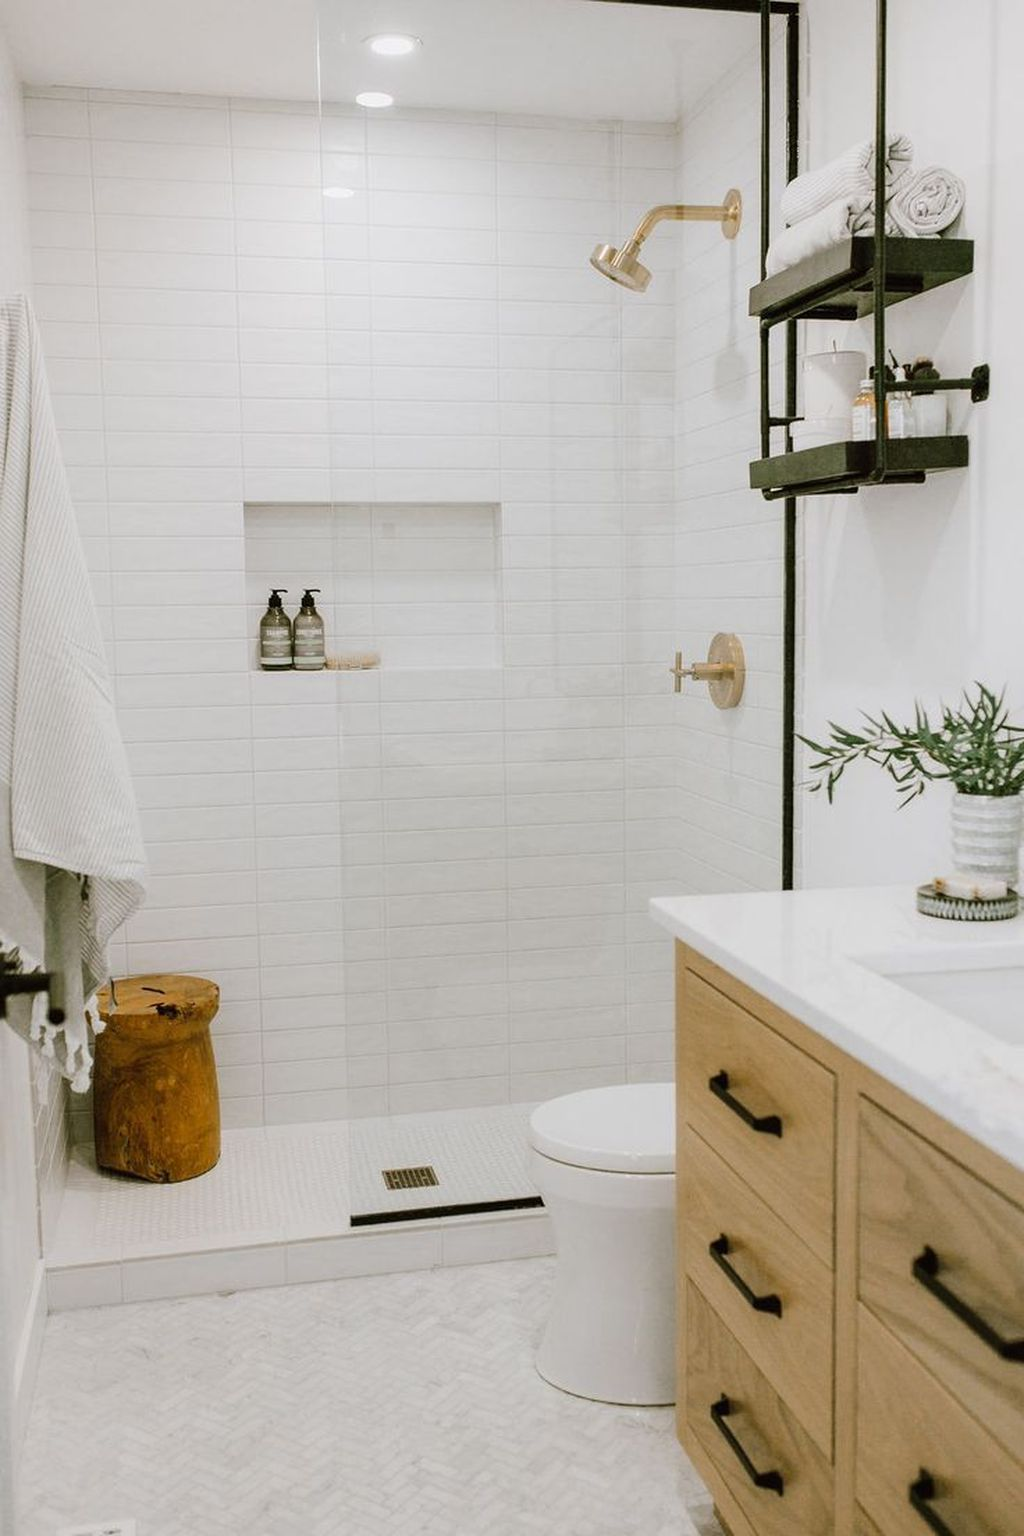 Amazing White Tile Bathroom Design Ideas Looks Elegant 12